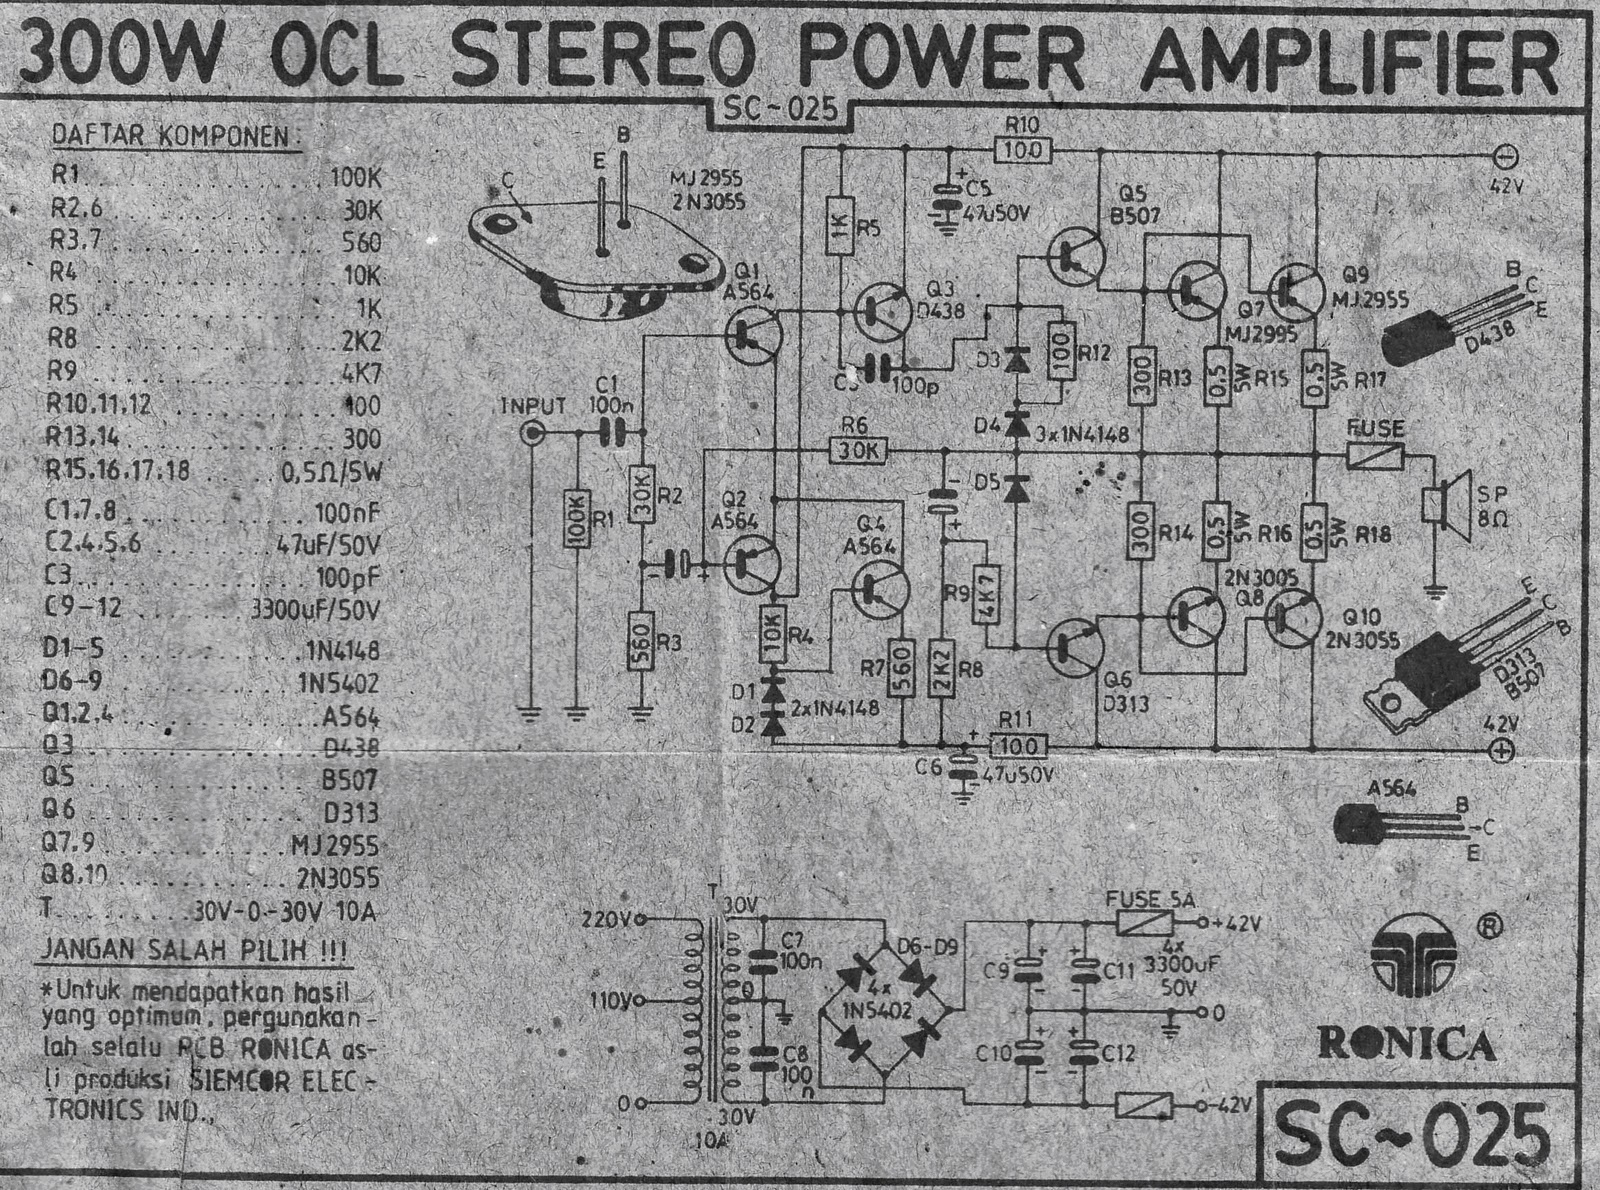 Schematic Wiring Diagram July 2011 Sub 150w 8ohm Subwoofer Amplifier Circuit Board 35 150hz 2sa1943 300w Power Ocl